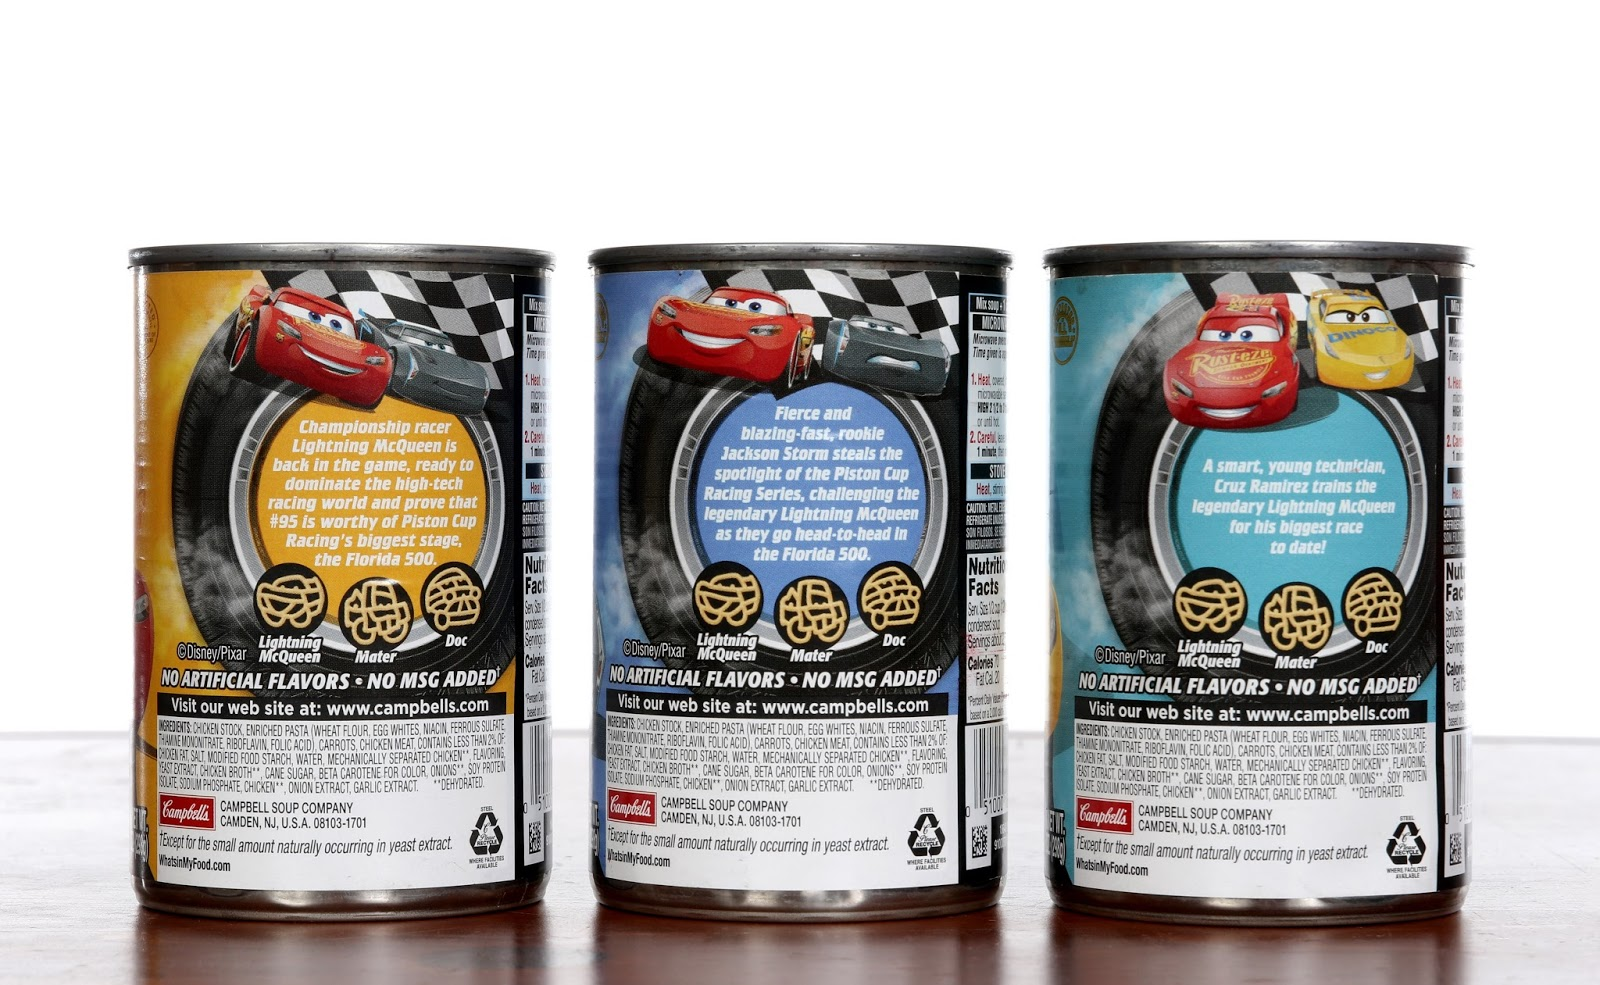 disney pixar Cars 3 campbell's soup